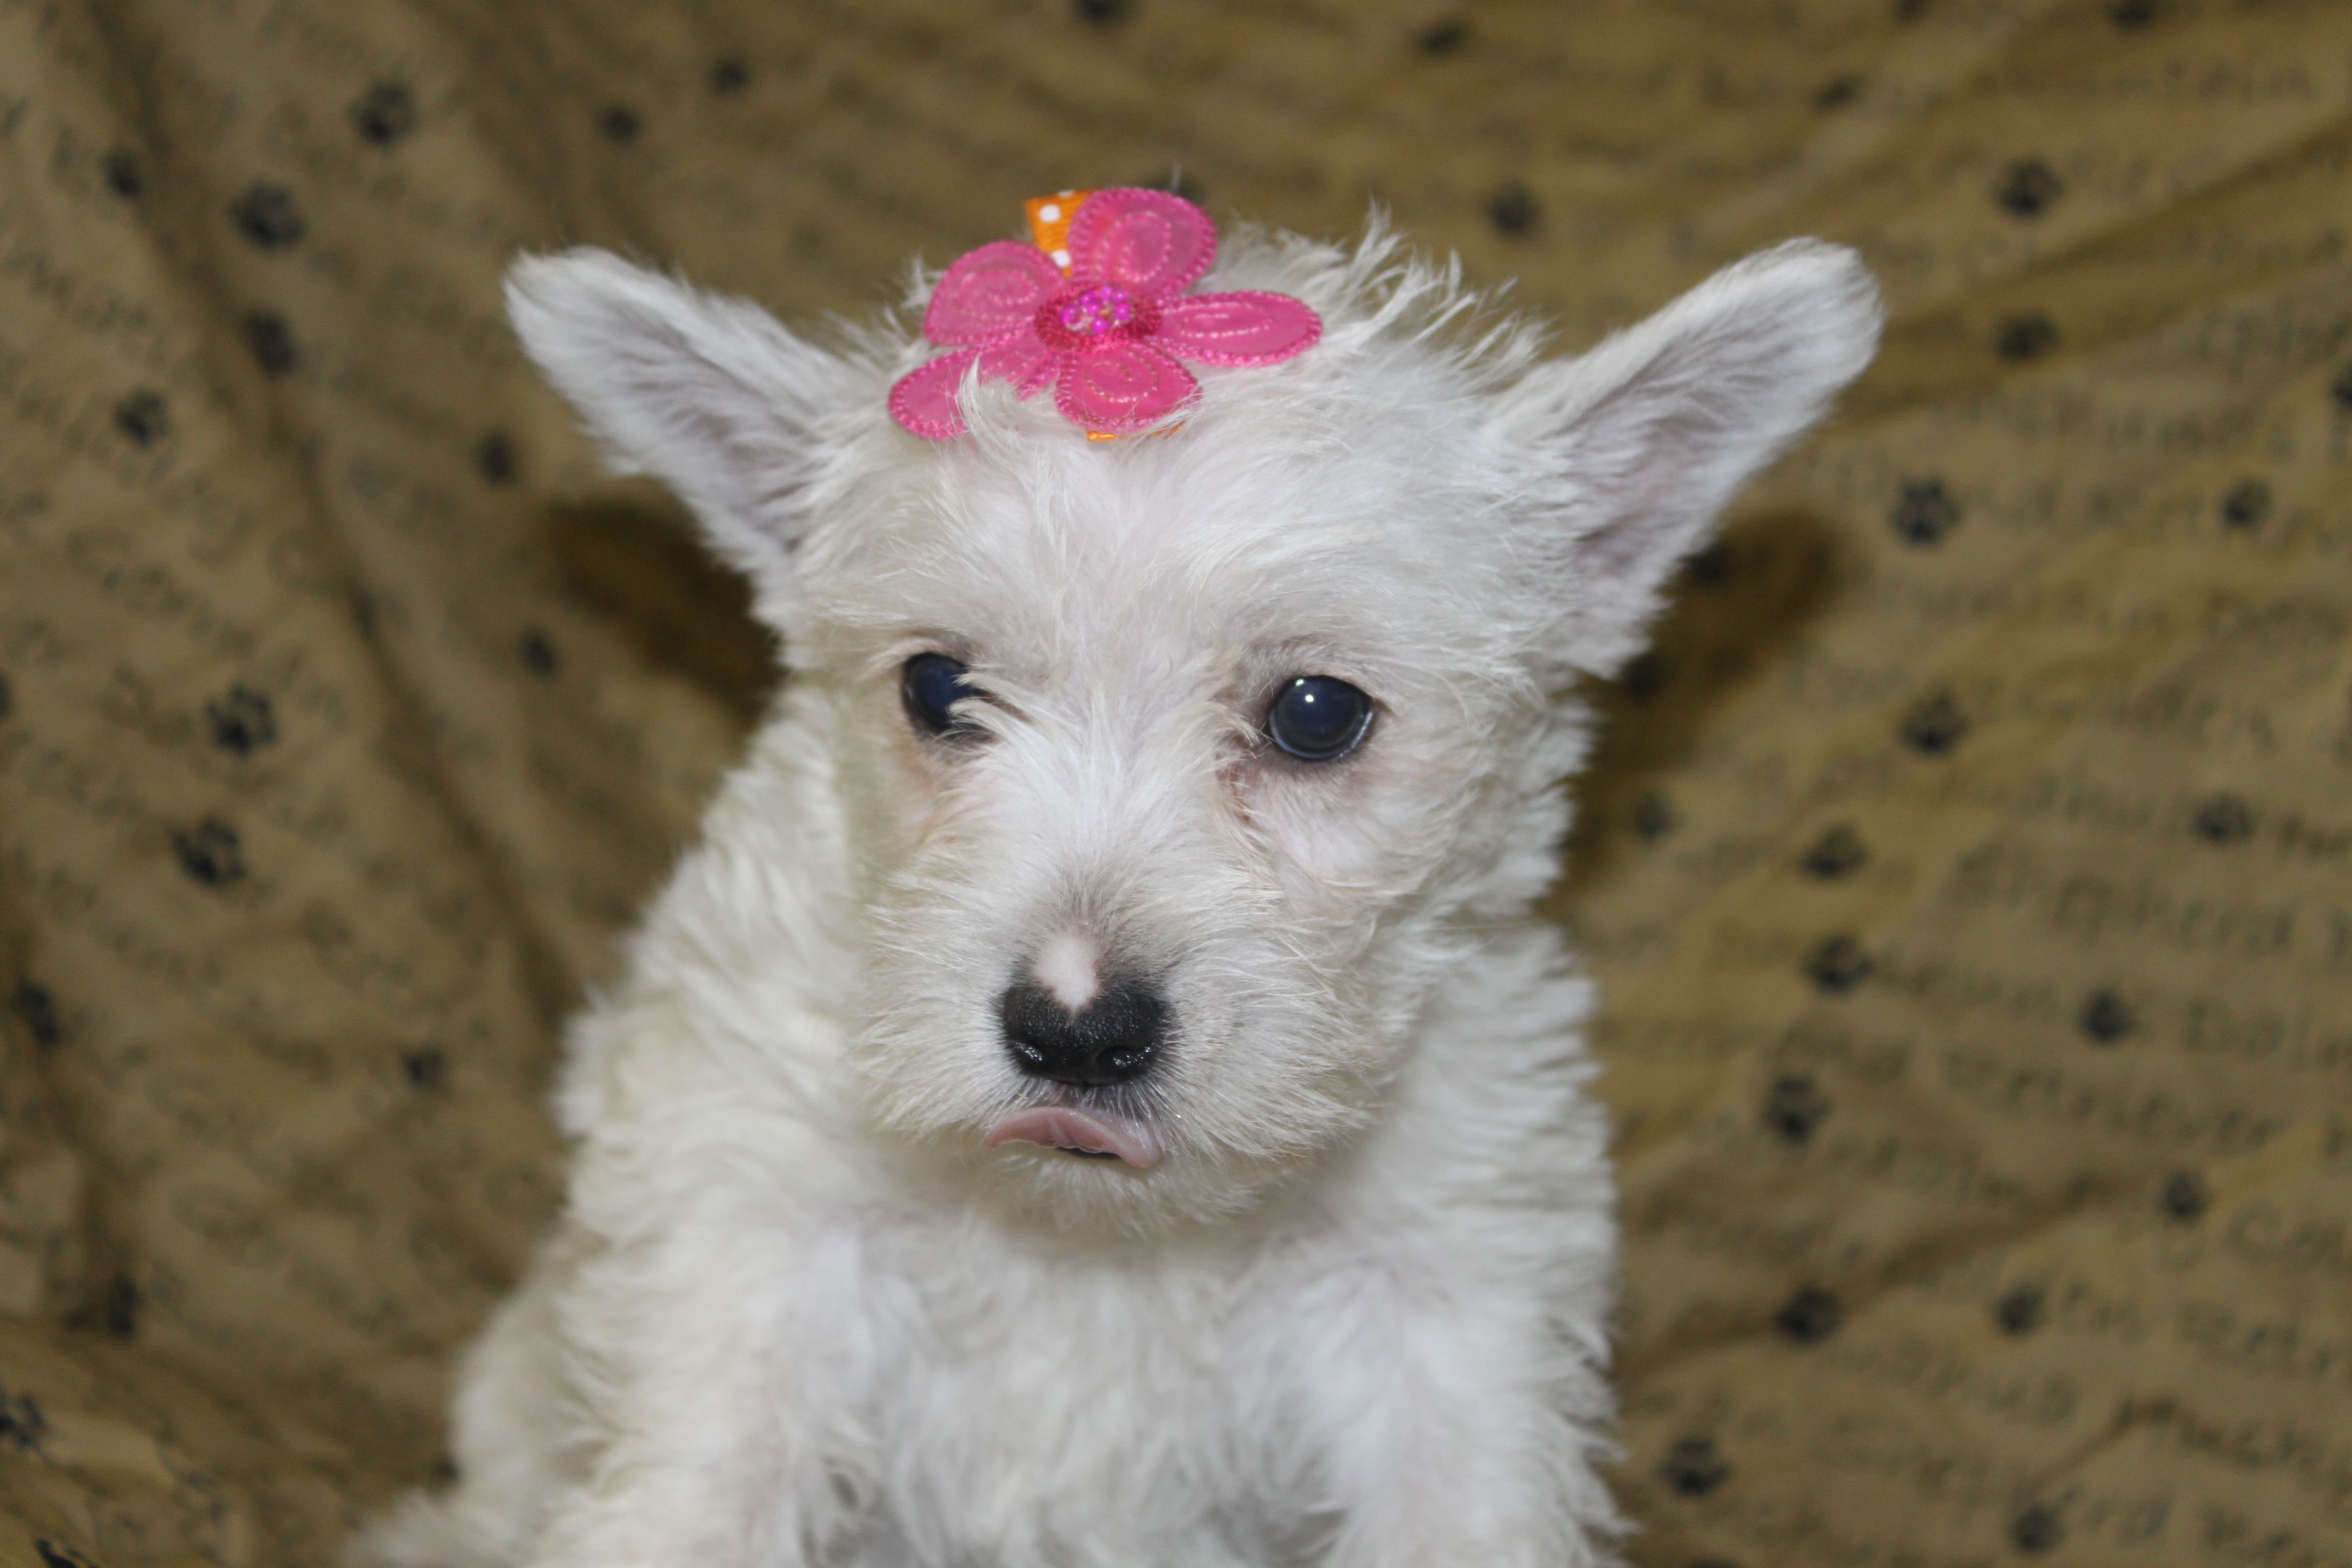 West highland white terrier puppies for sale in